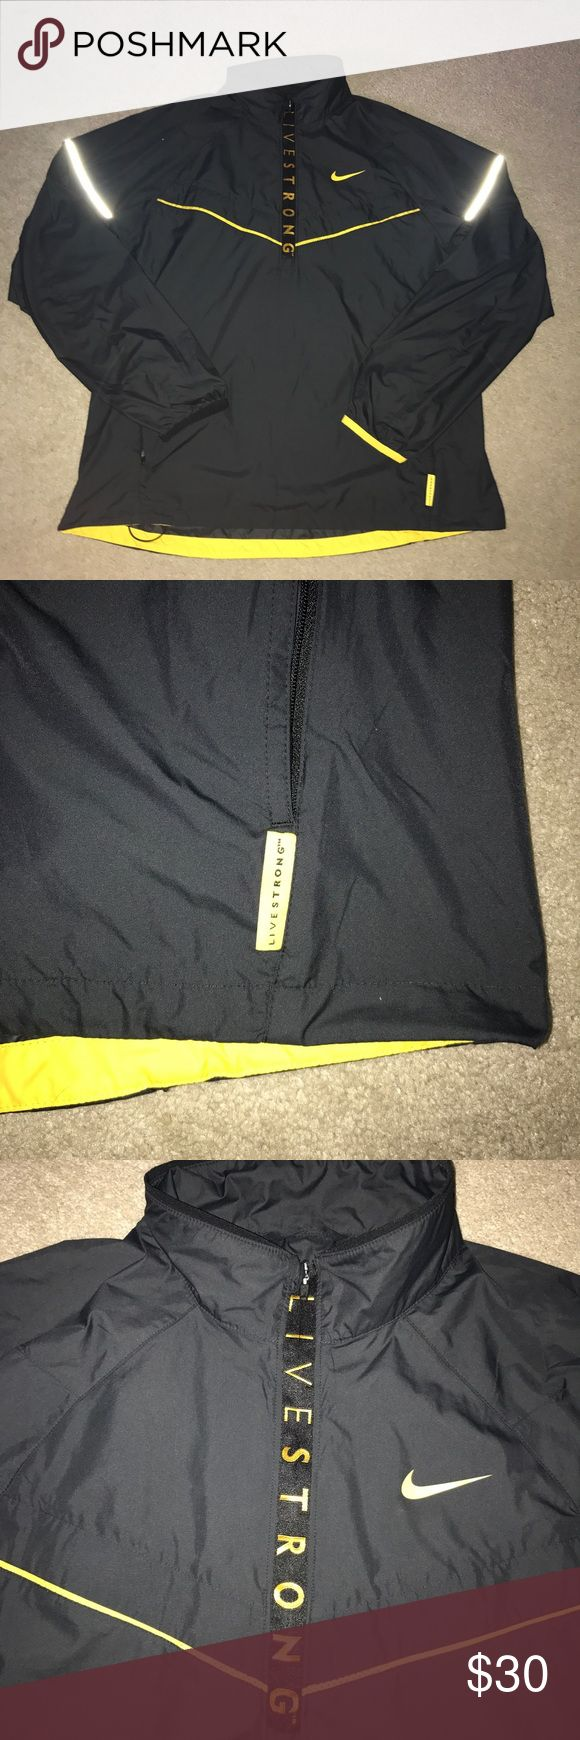 Nike livestrong Large men's Windbreaker Men's livestrong windbreaker in great condition but there is a paint stain on the shoulder Nike Jackets & Coats Windbreakers